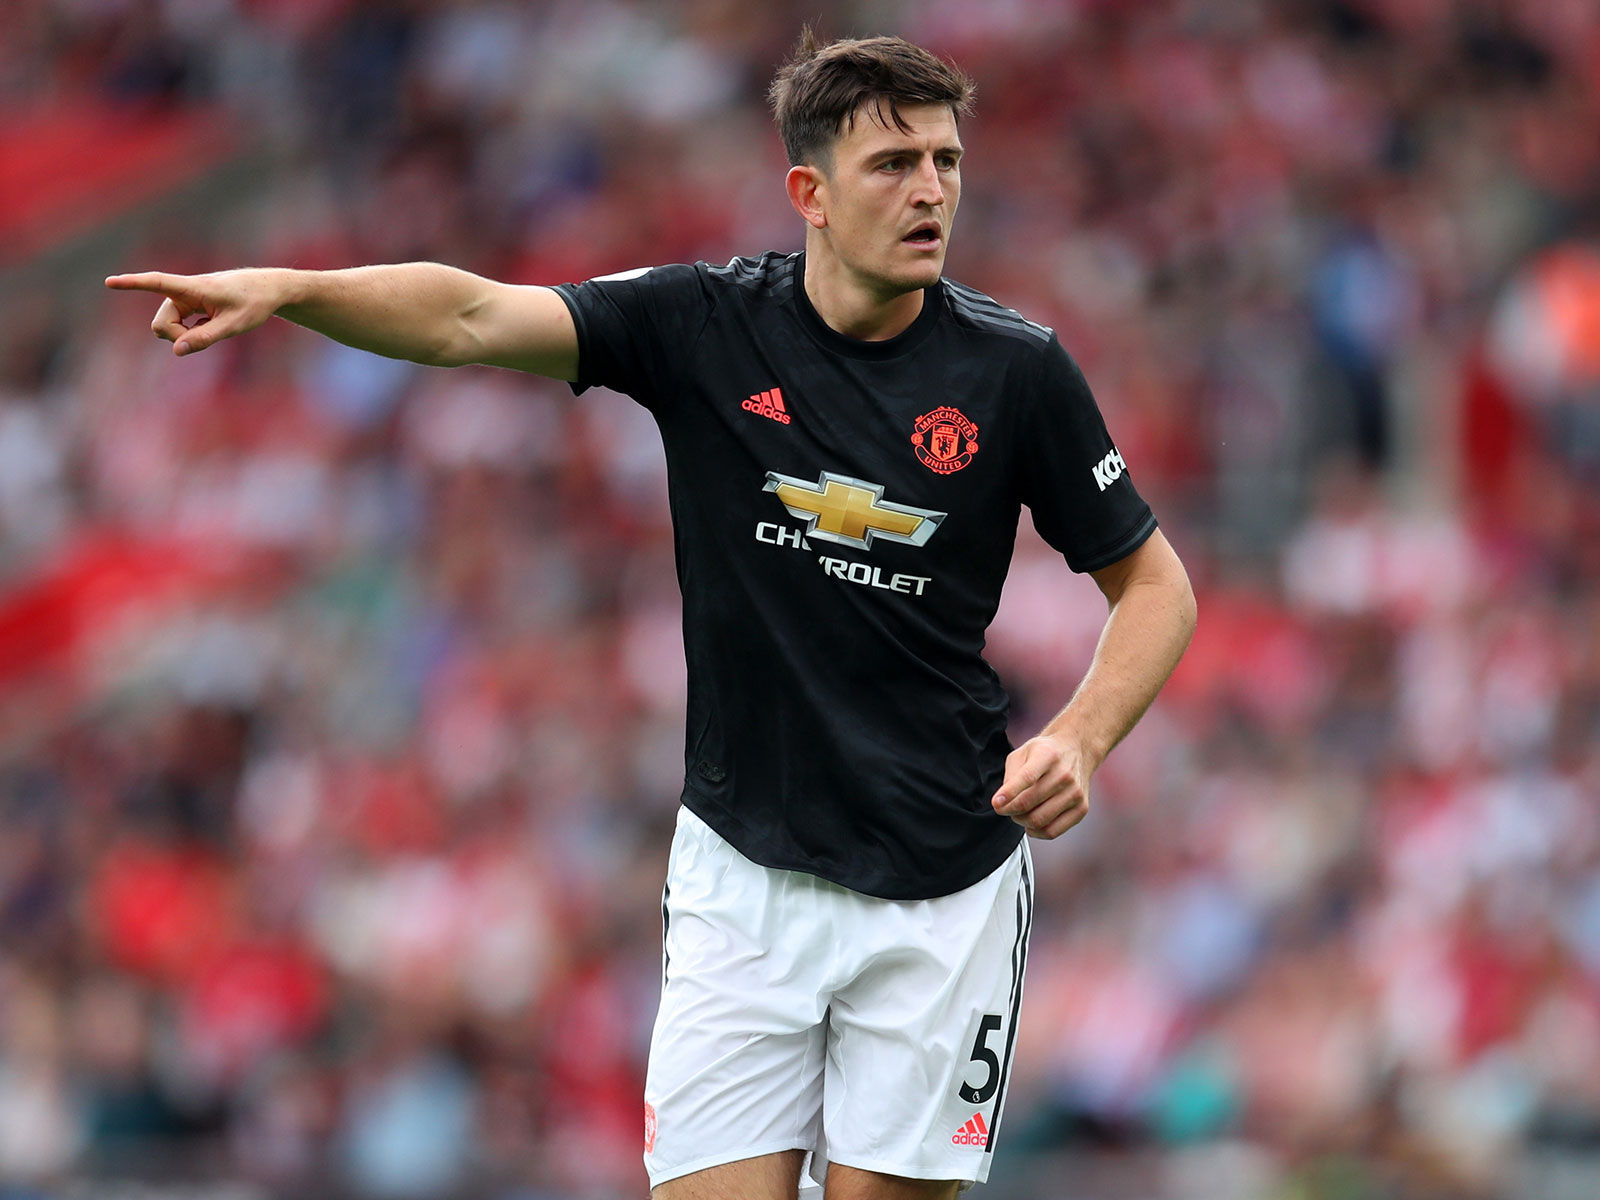 Harry Maguire is Man United's new center back